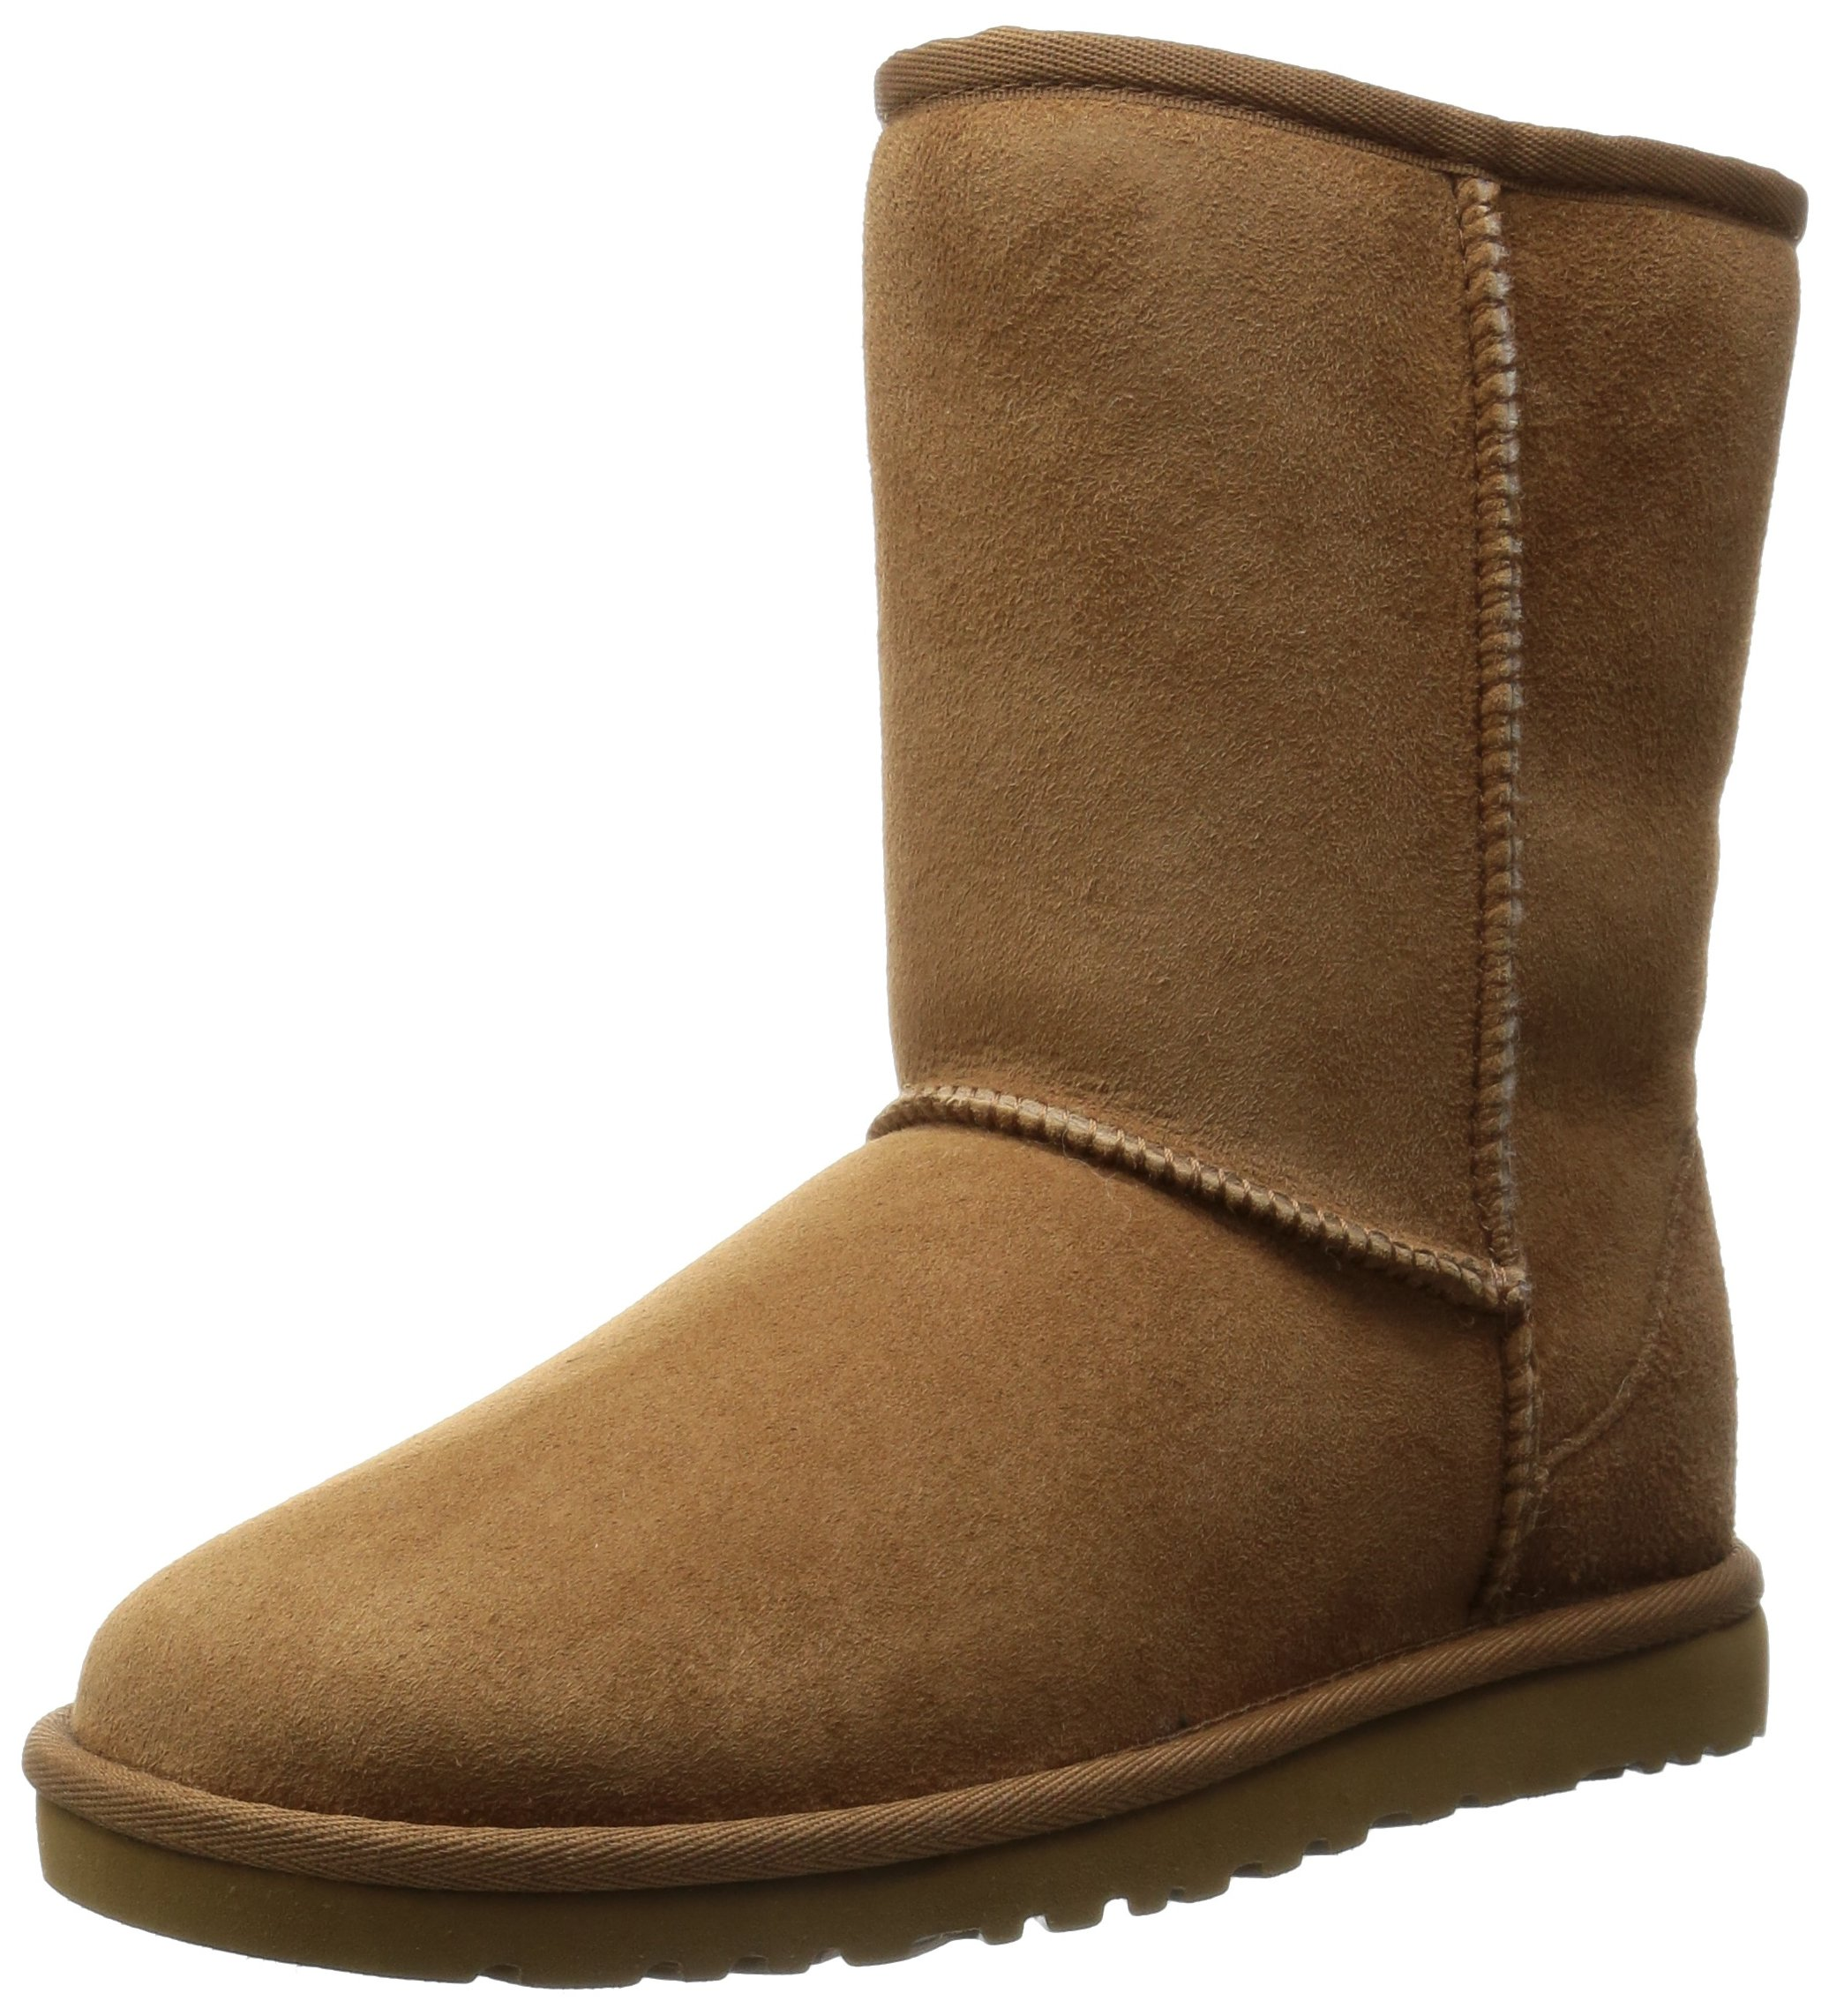 UGG Men's Classic Short Sheepskin Boots, Chestnut, 12 D(M) US